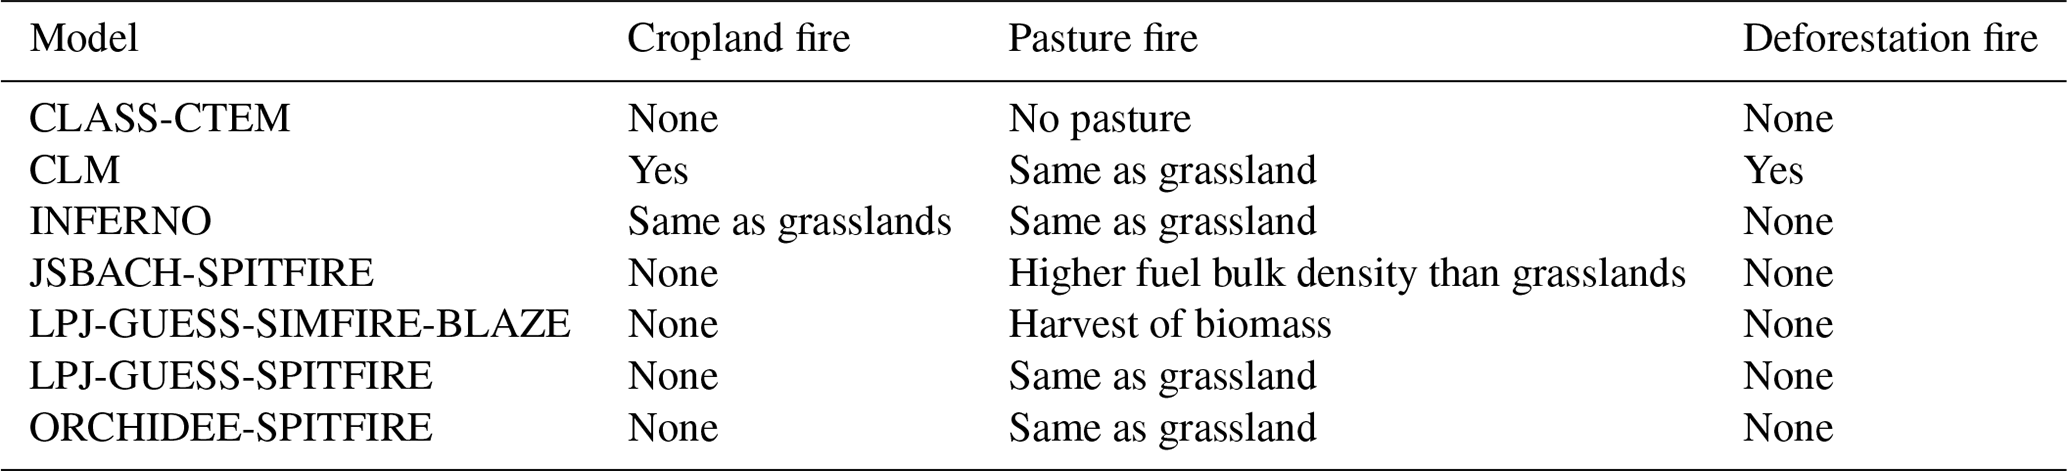 BG - Response of simulated burned area to historical changes